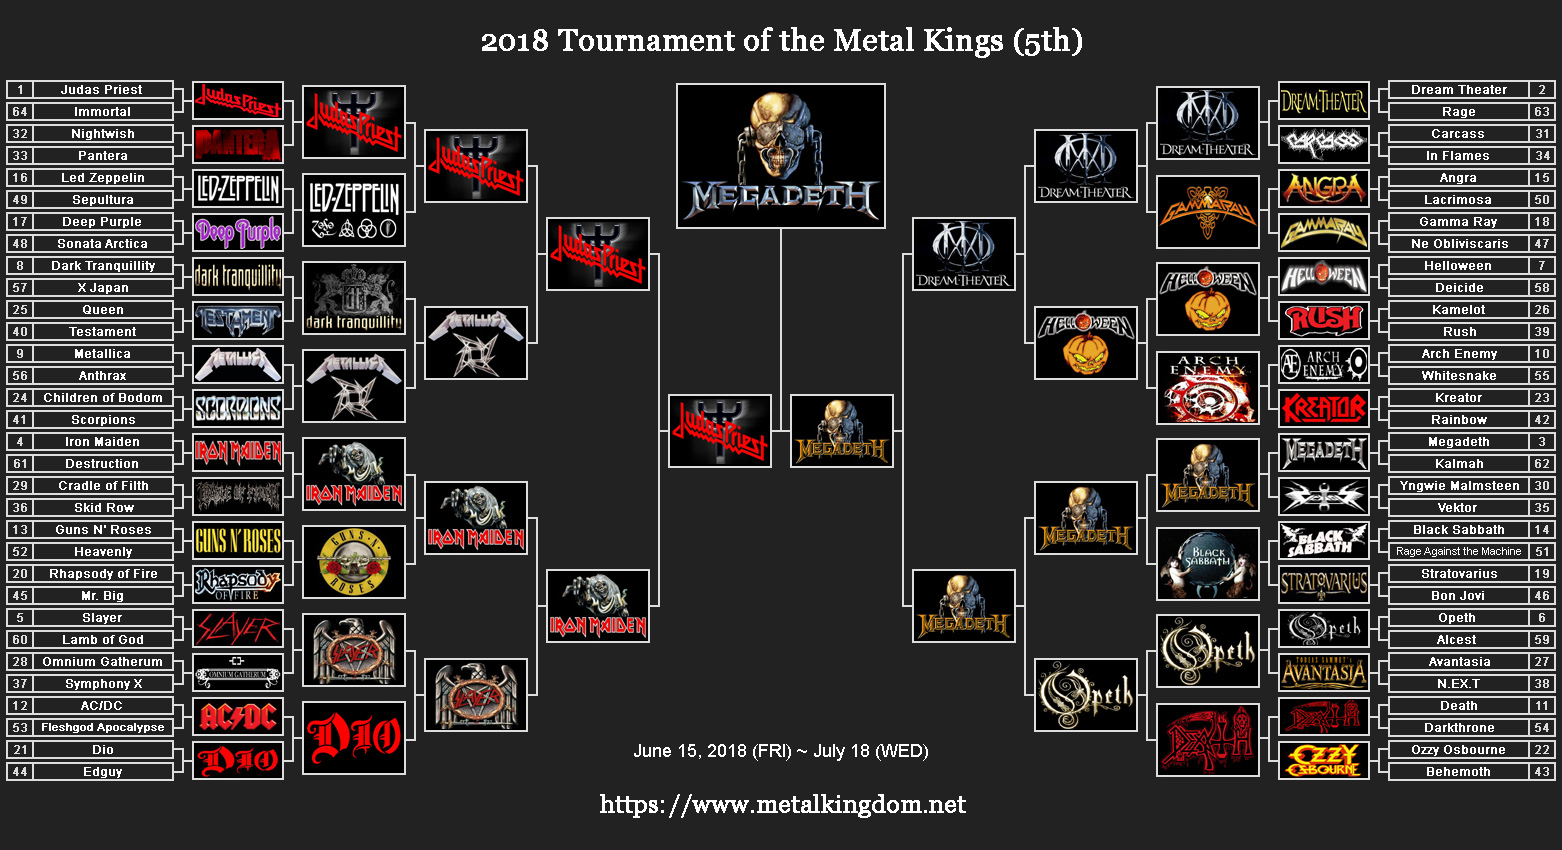 2018 tournament of the metal kings results